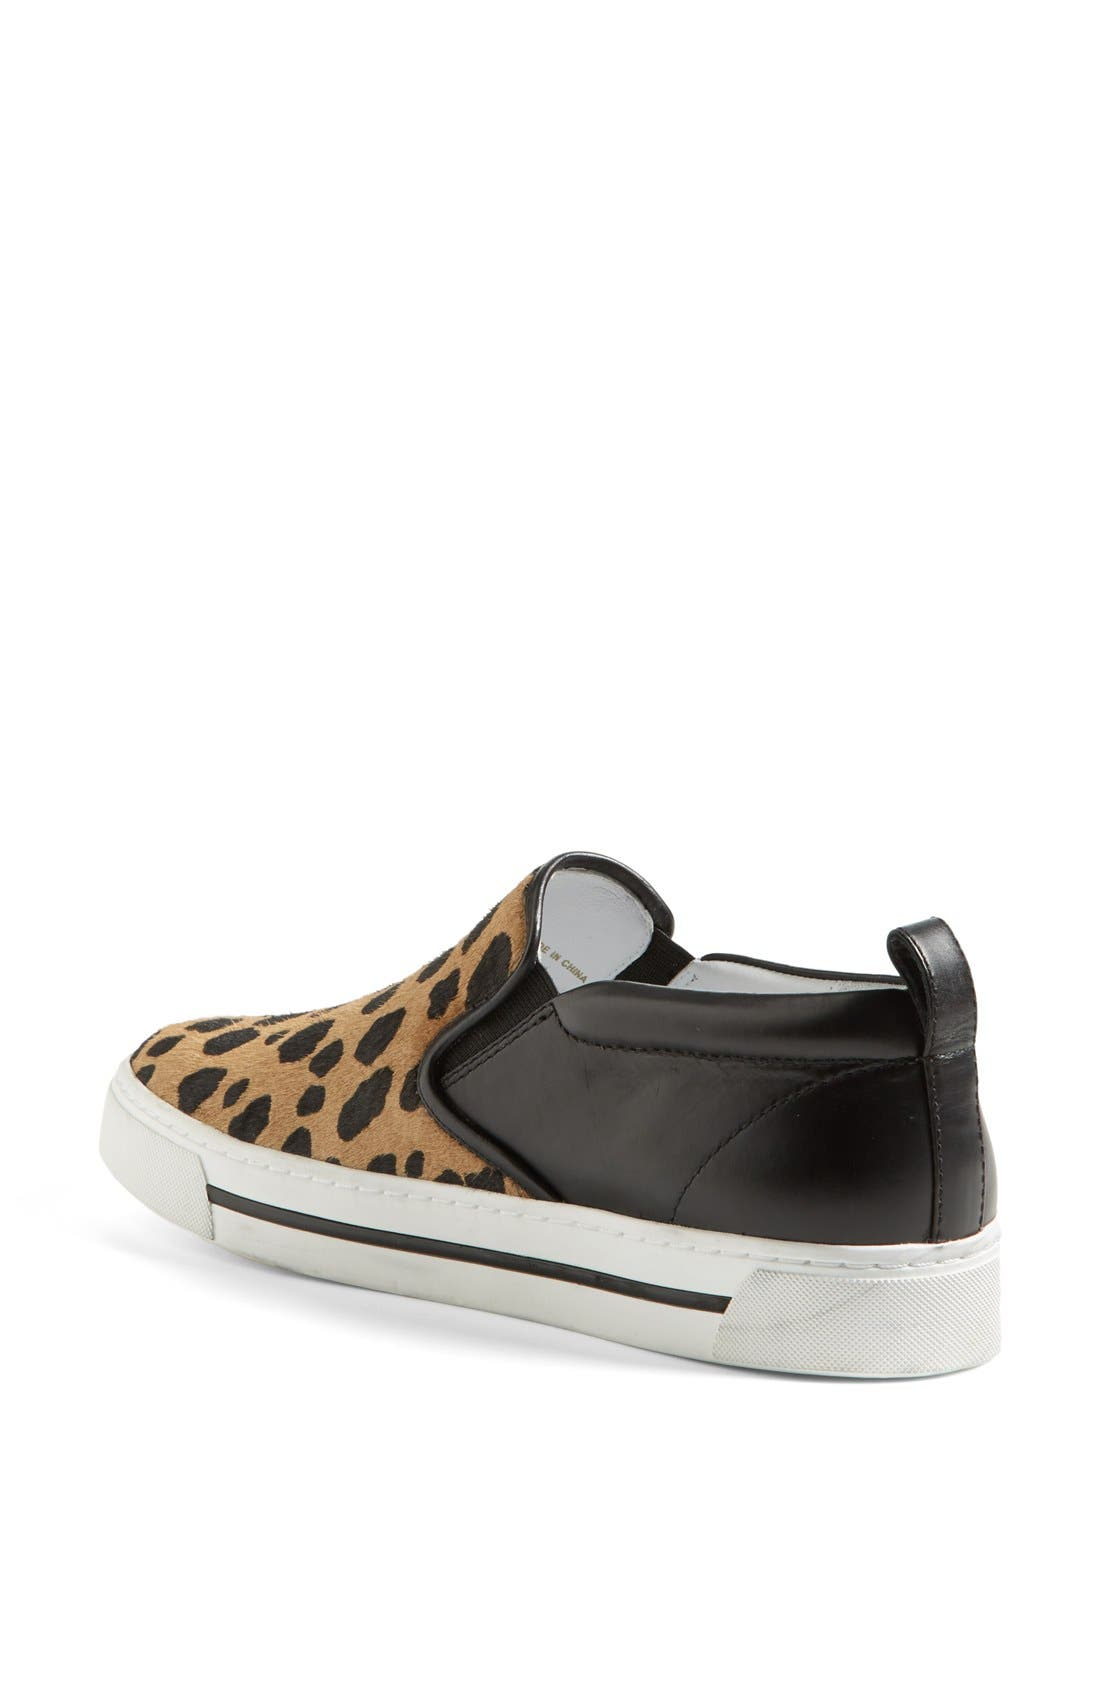 MARC BY MARC JACOBS Leather & Calf Hair Slip-On Sneaker,                             Alternate thumbnail 2, color,